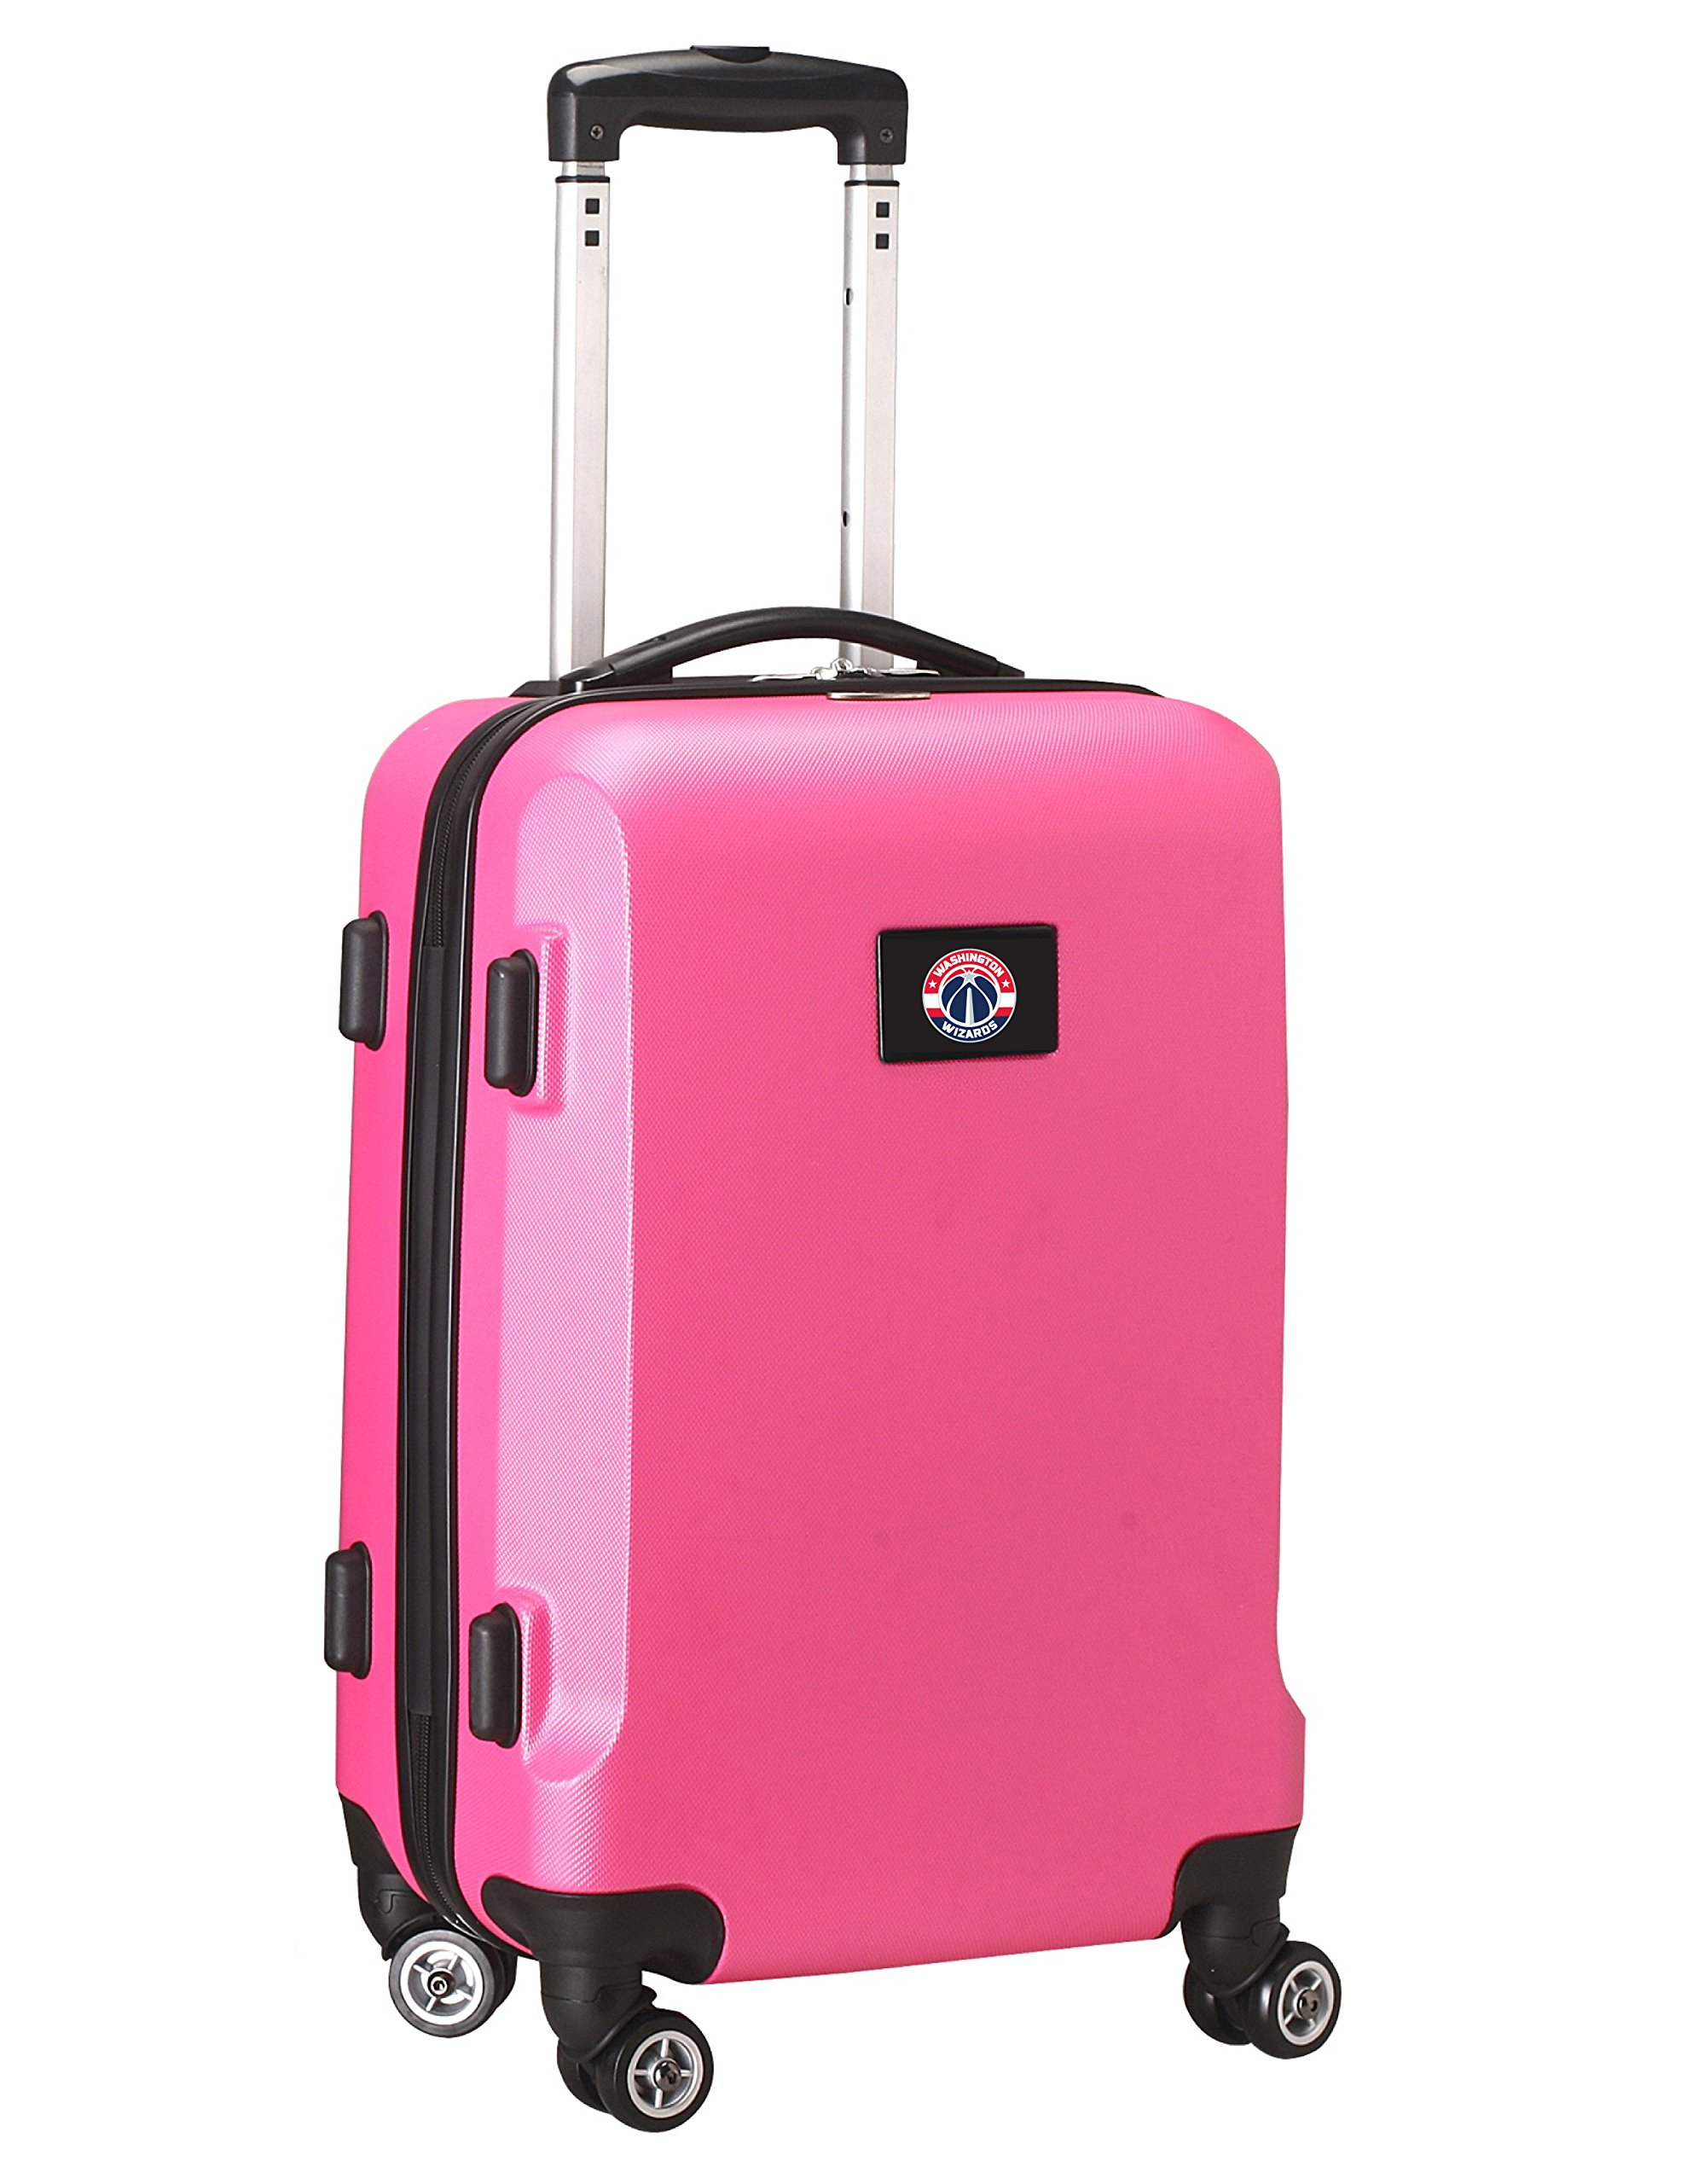 Denco NBA Washington Wizards Carry-On Hardcase Spinner, Pink by Denco